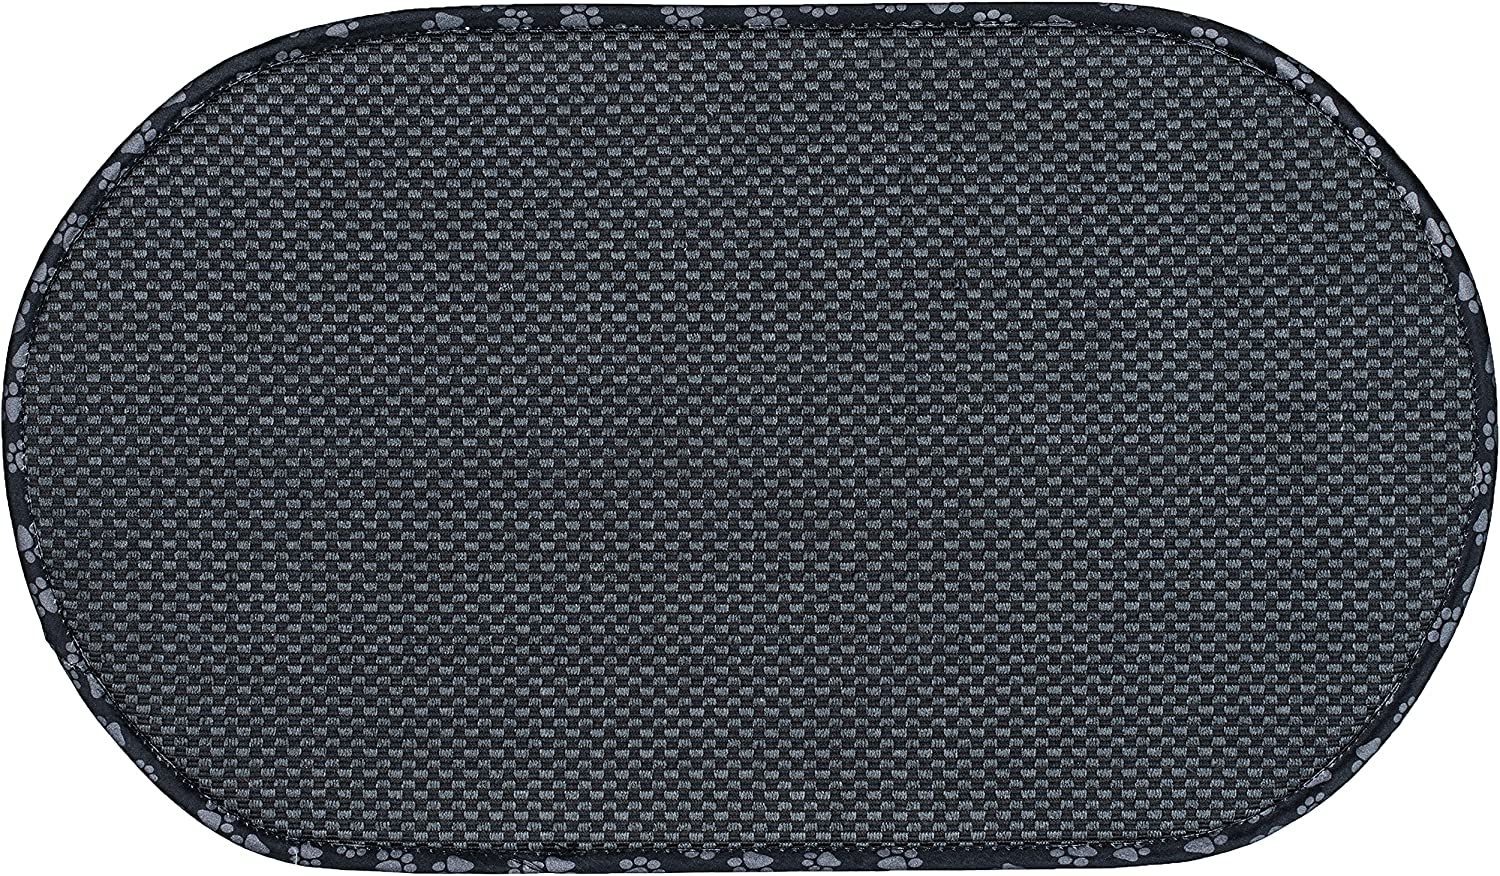 Envision Home 443301 Microfiber Pet Bowl Mat, 12.5 Inch x 21.5 Inch, Black